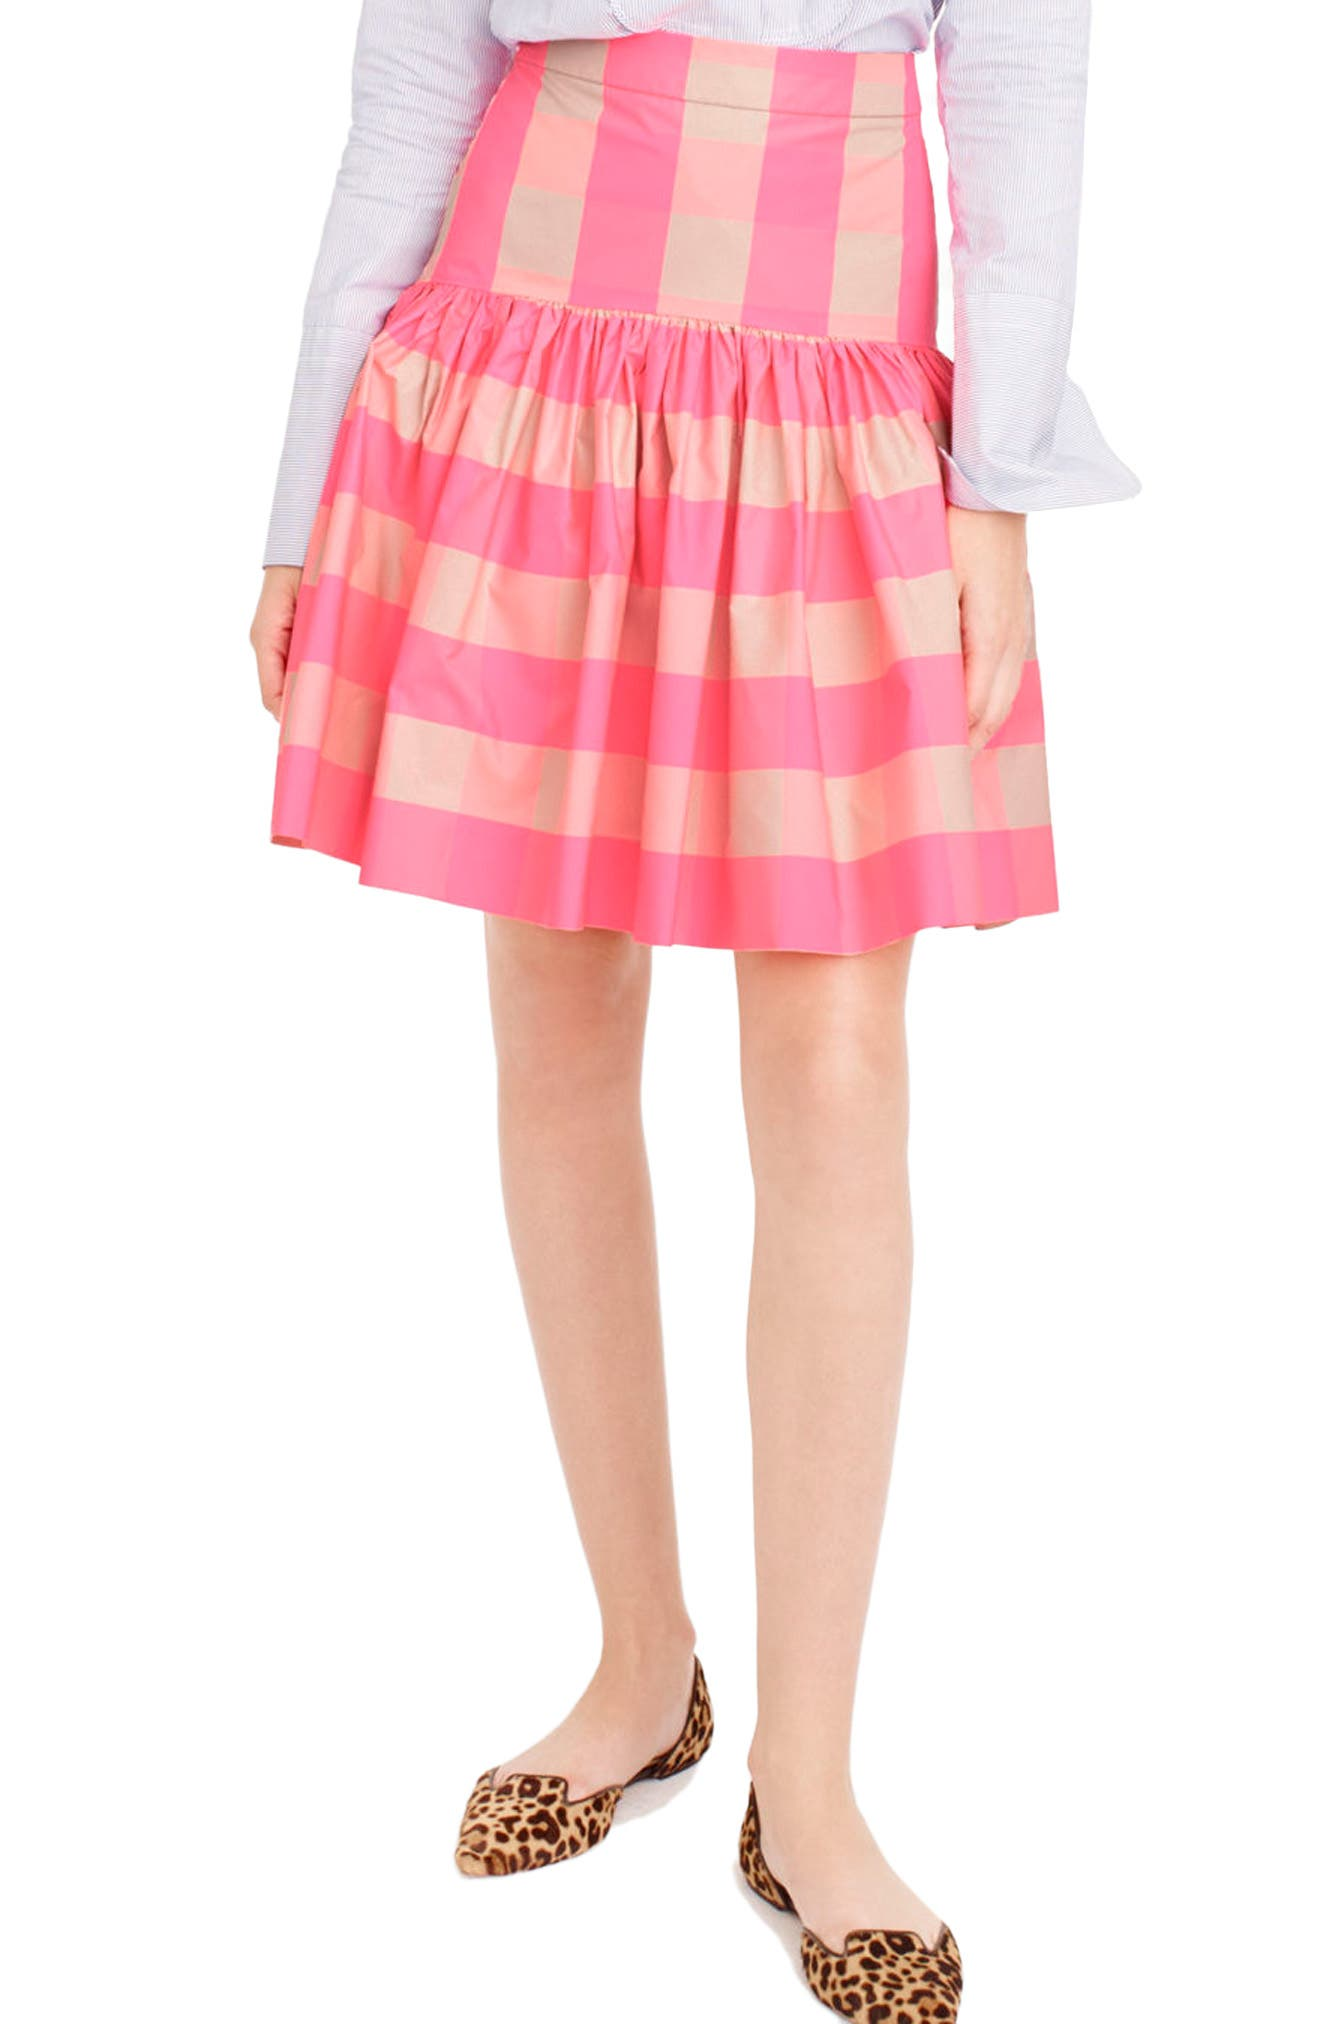 J.CREW, Neon Buffalo Check Taffeta Skirt, Main thumbnail 1, color, 651